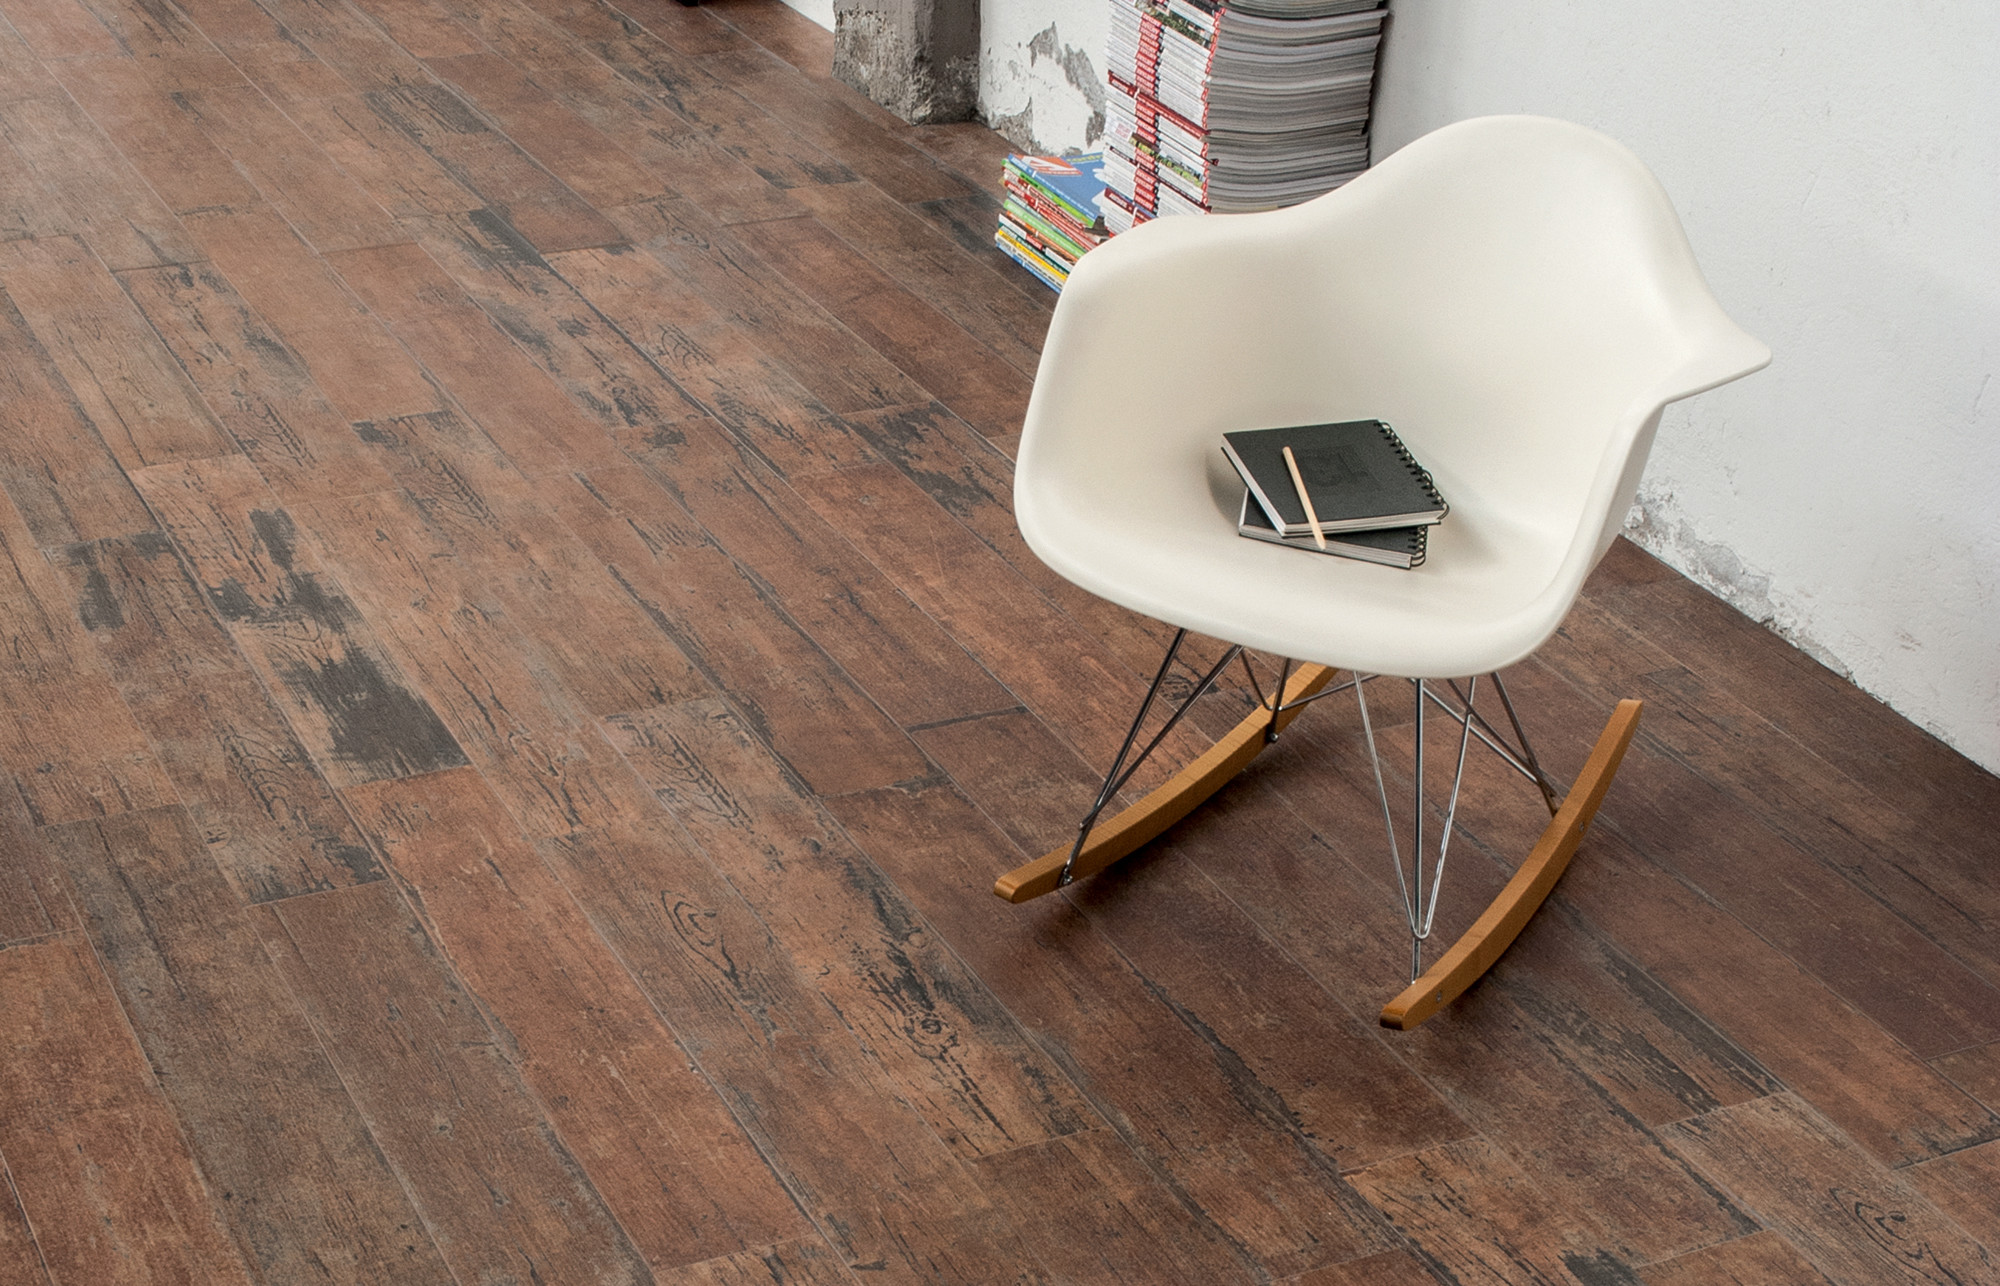 hardwood flooring omaha ne of ceramic tile for your upcoming project search now intended for charmwood by kate lo tile and stone